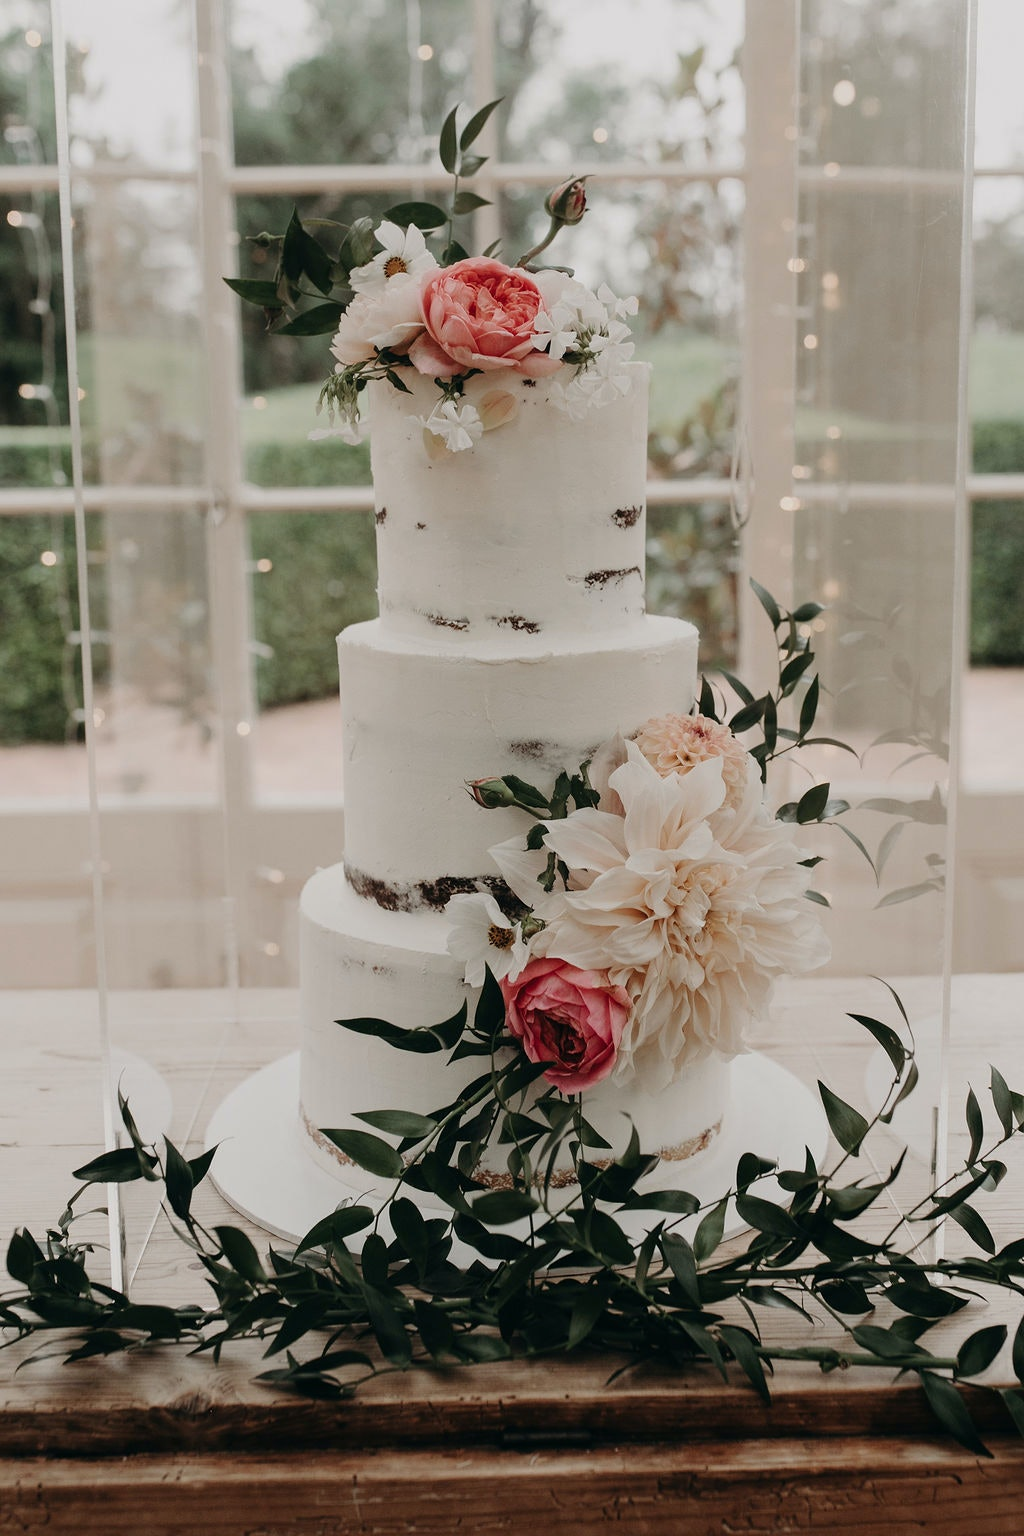 Naked wedding cake with white icing and fresh flowers